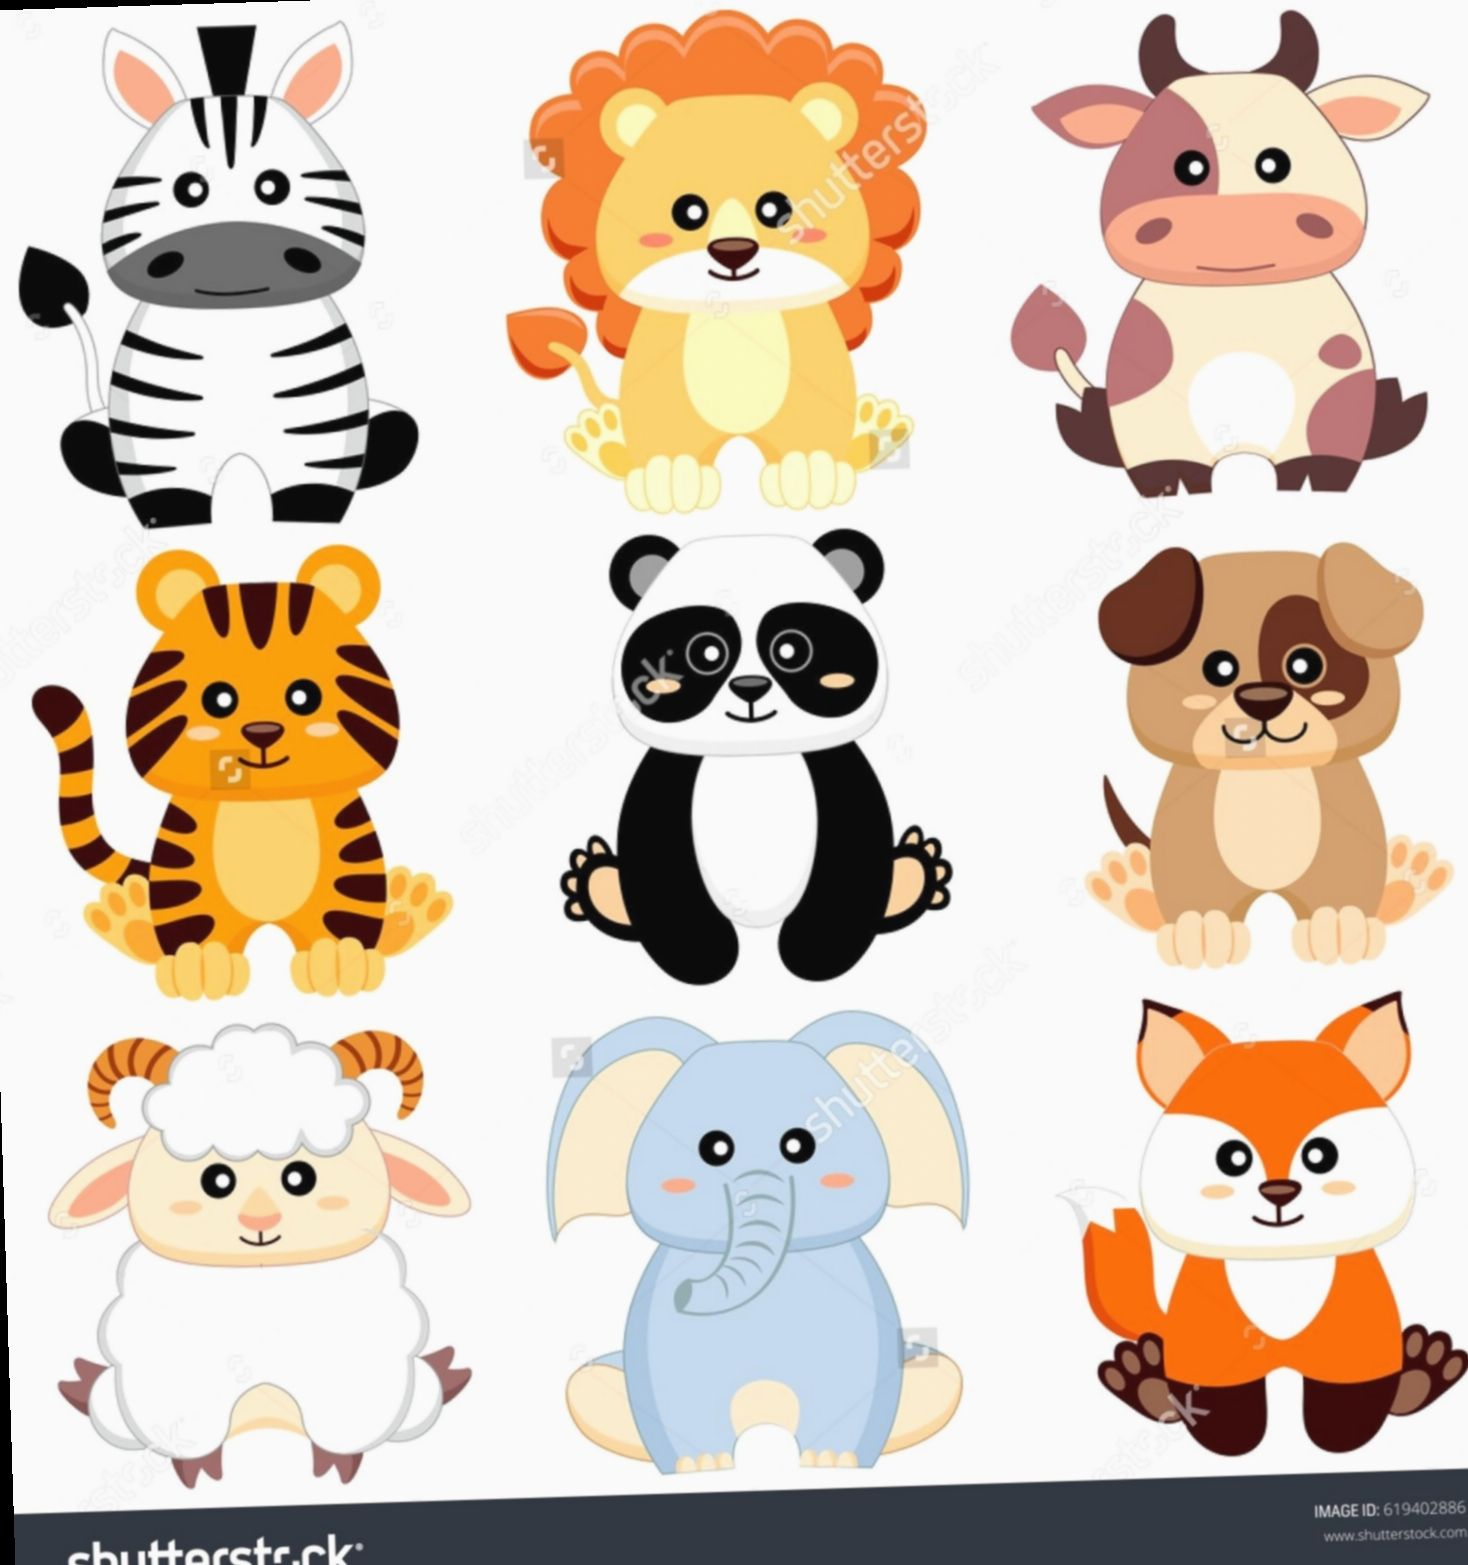 Cute Animals Cartoon Baby Cute Amizades Mundorosa Ilhadogovernador Cartoon Baby Animals Baby Animals Baby Cartoon